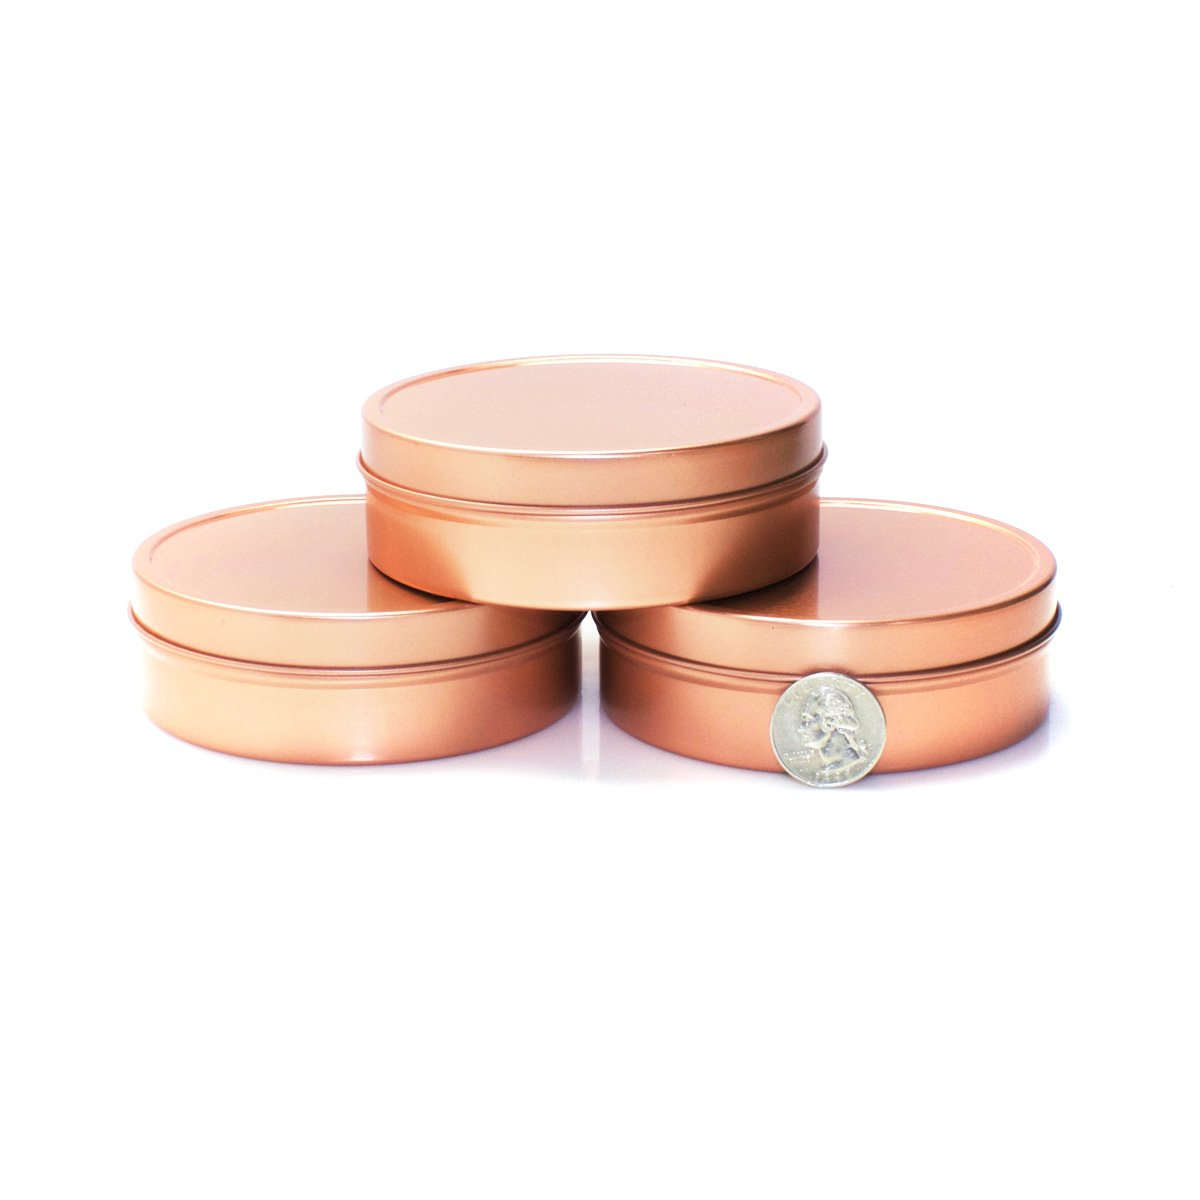 Mimi Pack ALL Shallow Solid Slip Top Tins (8 oz, Rose Gold) by Mimi Pack (Image #4)